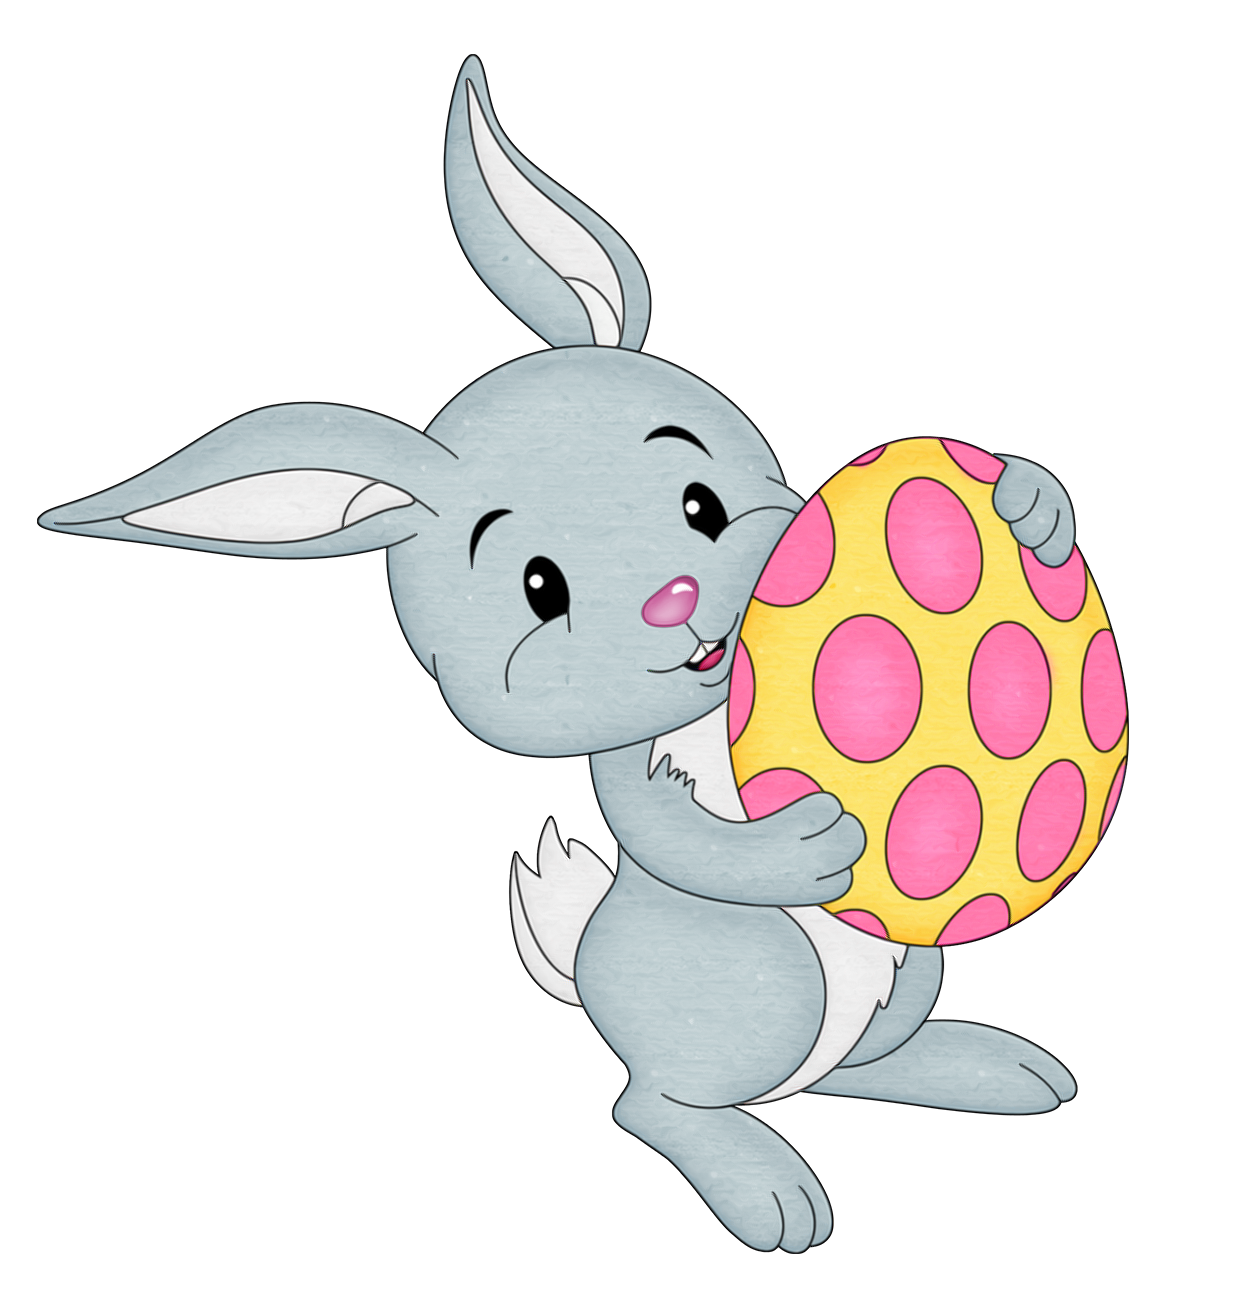 Transparent easter clipart clipart black and white Easter Bunny Clip art - Easter Bunny with Yellow Egg ... clipart black and white